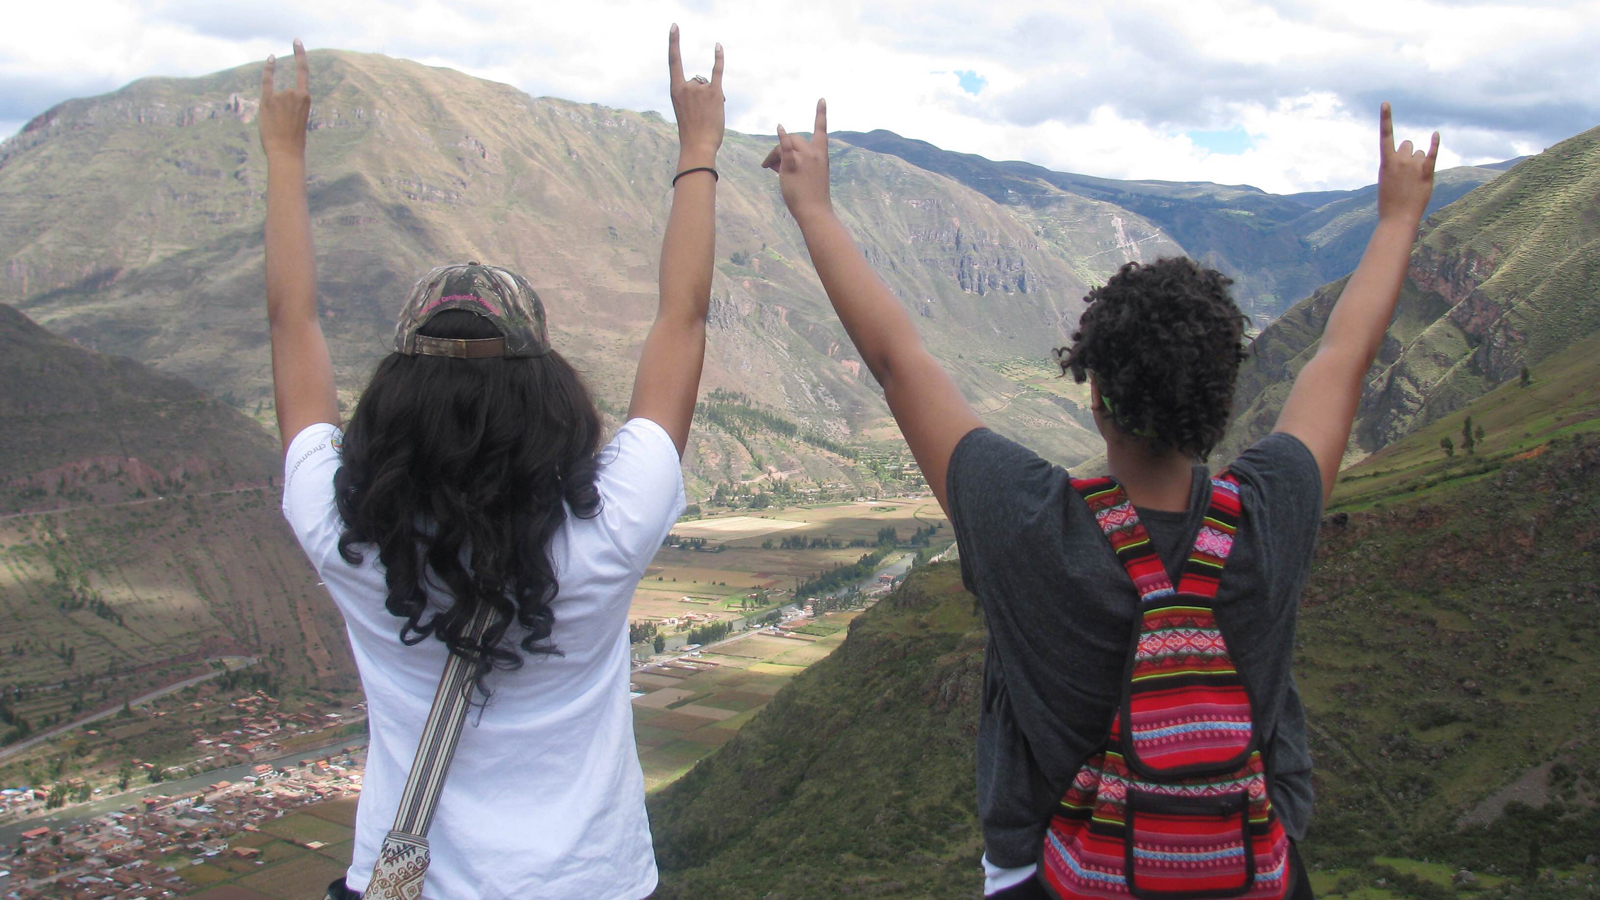 Two students are pictured on a study abroad trip